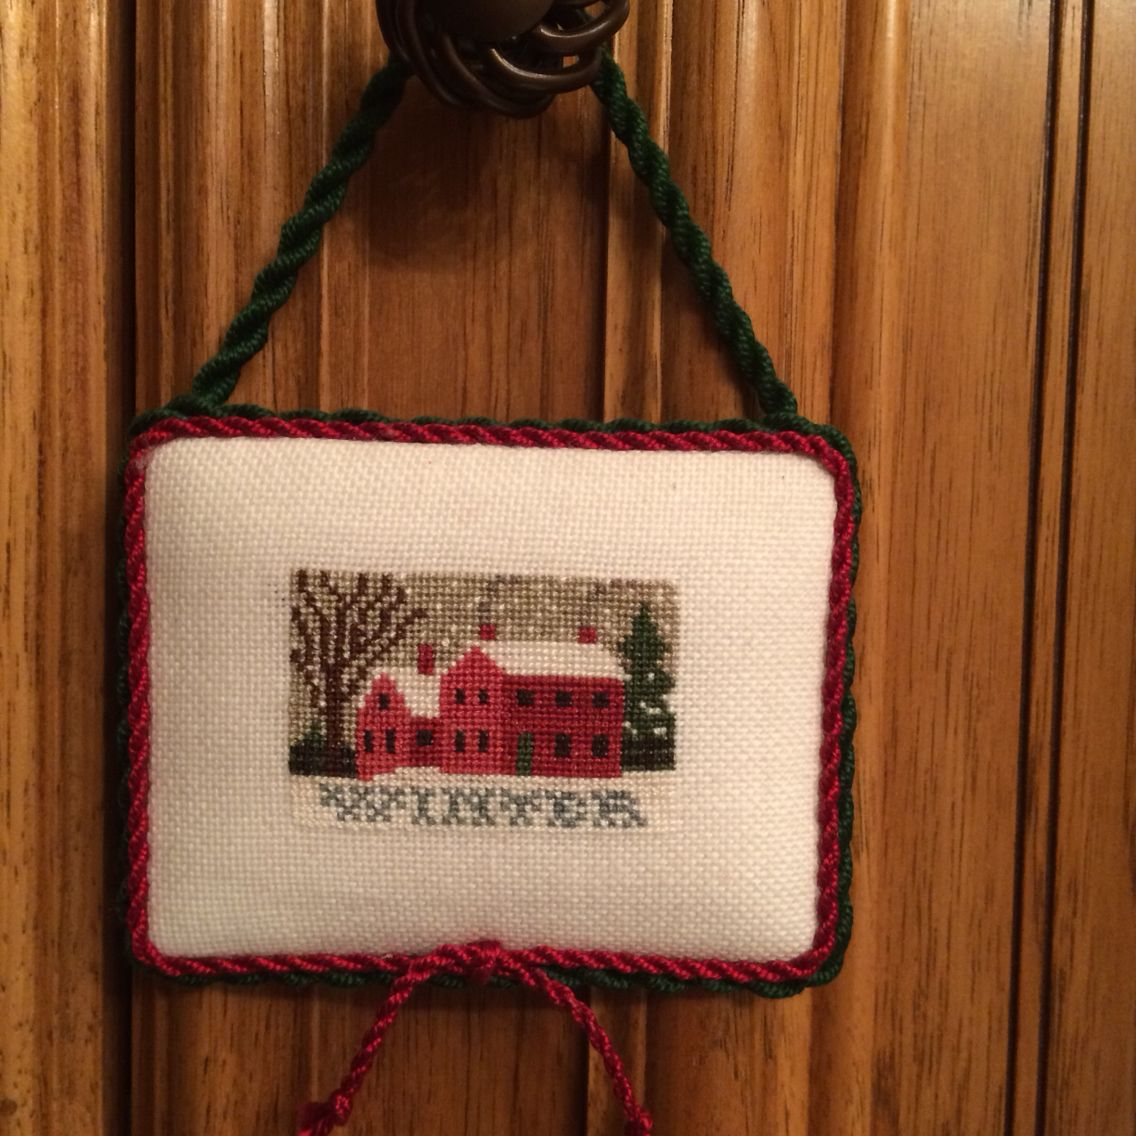 Winter Christmas Cross Stitch One of my favorites.